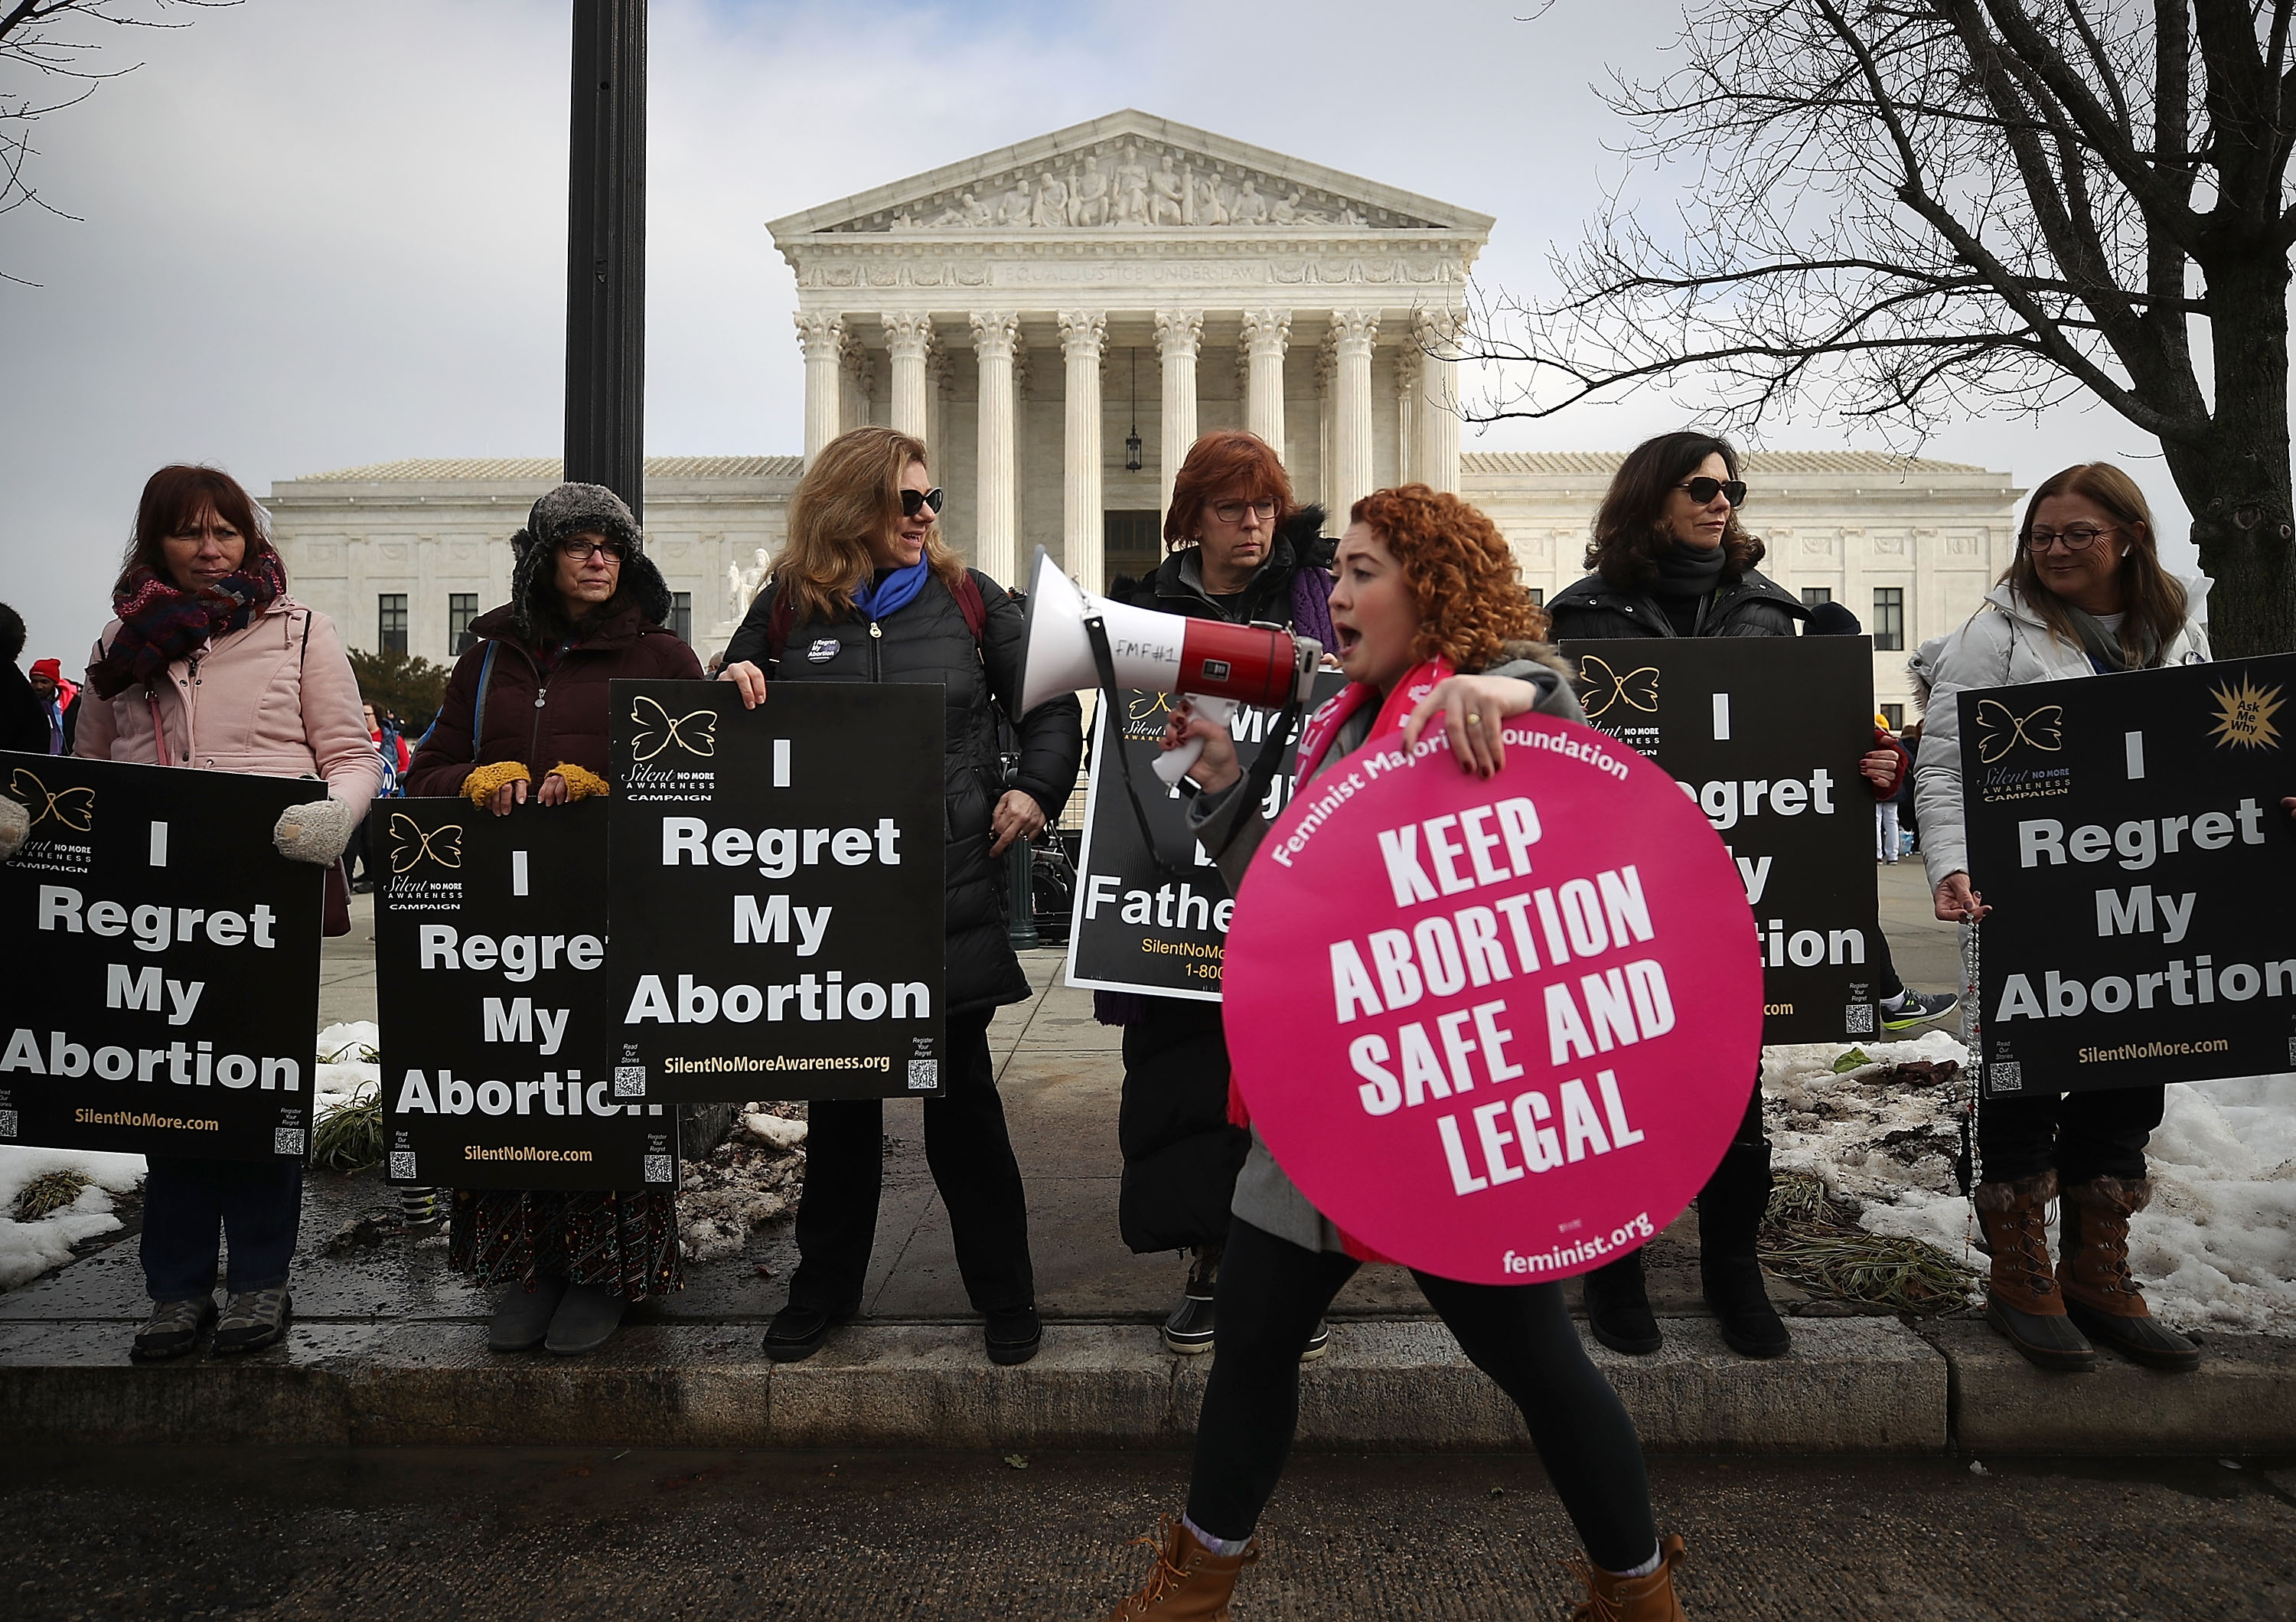 Protesters on both sides of the abortion issue gather in front of the U.S. Supreme Court on January 18.